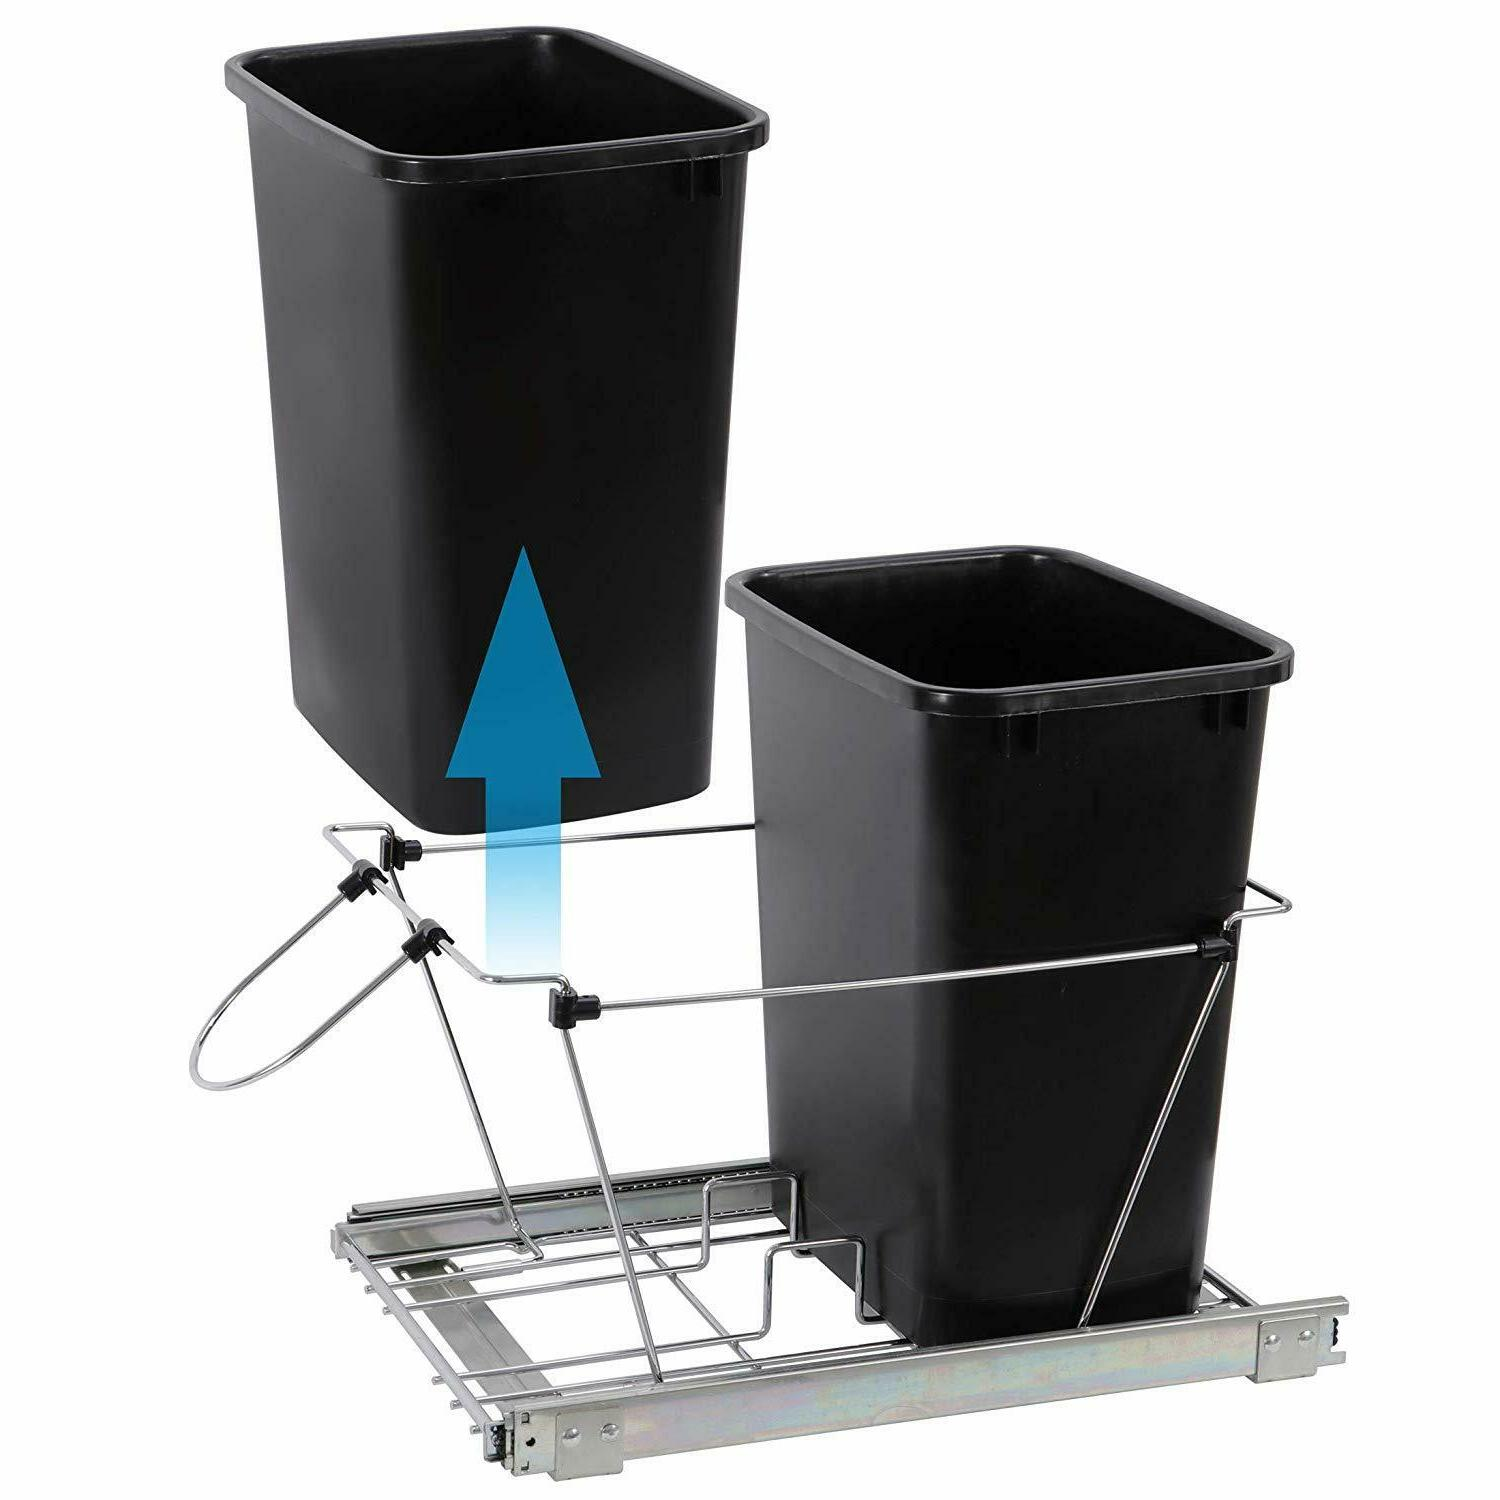 Pull Trash Kitchen Under Waste Container Double Quart